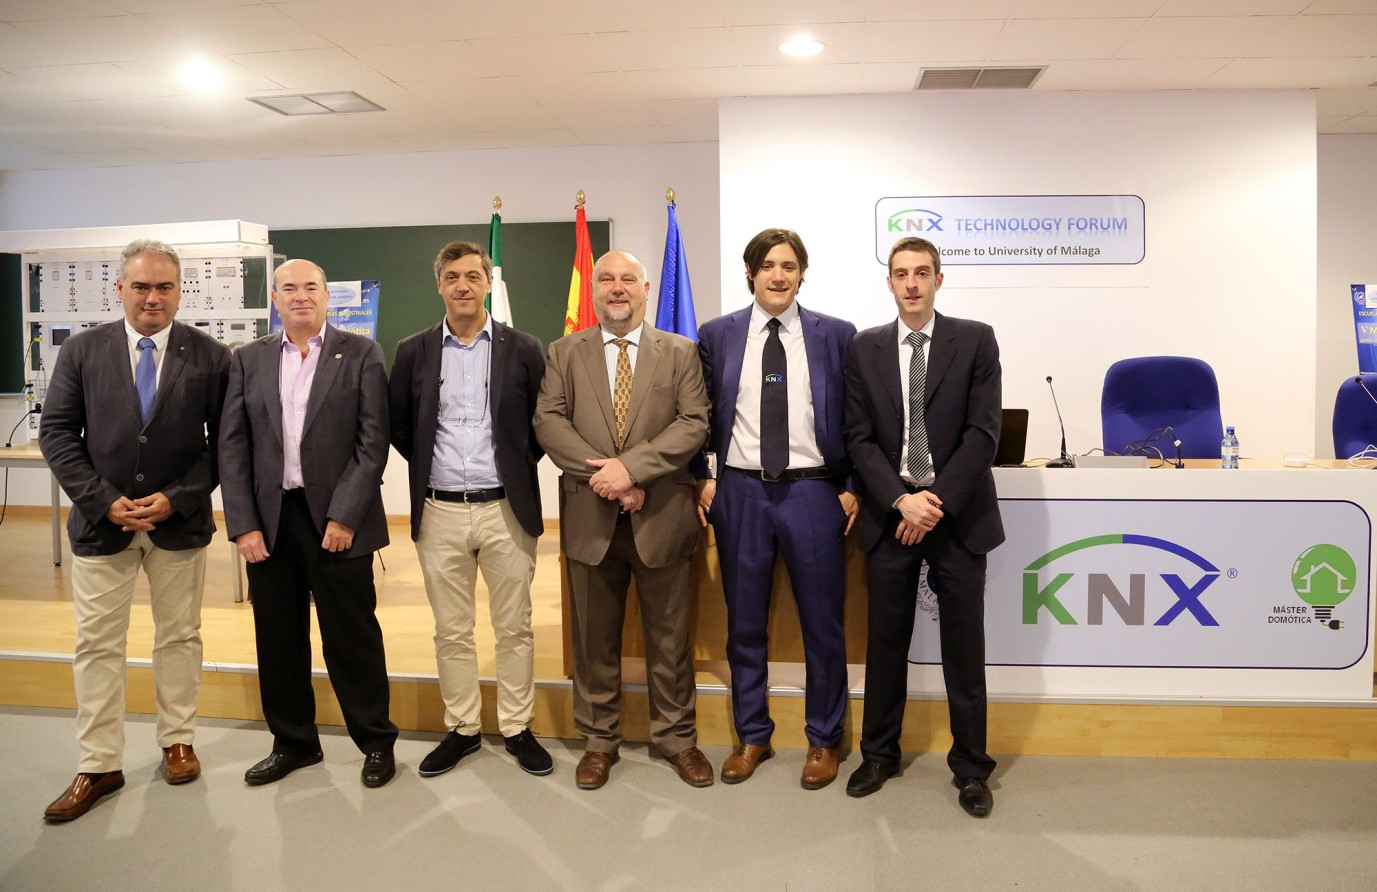 KNX TECHNOLOGY FORUM SPAIN